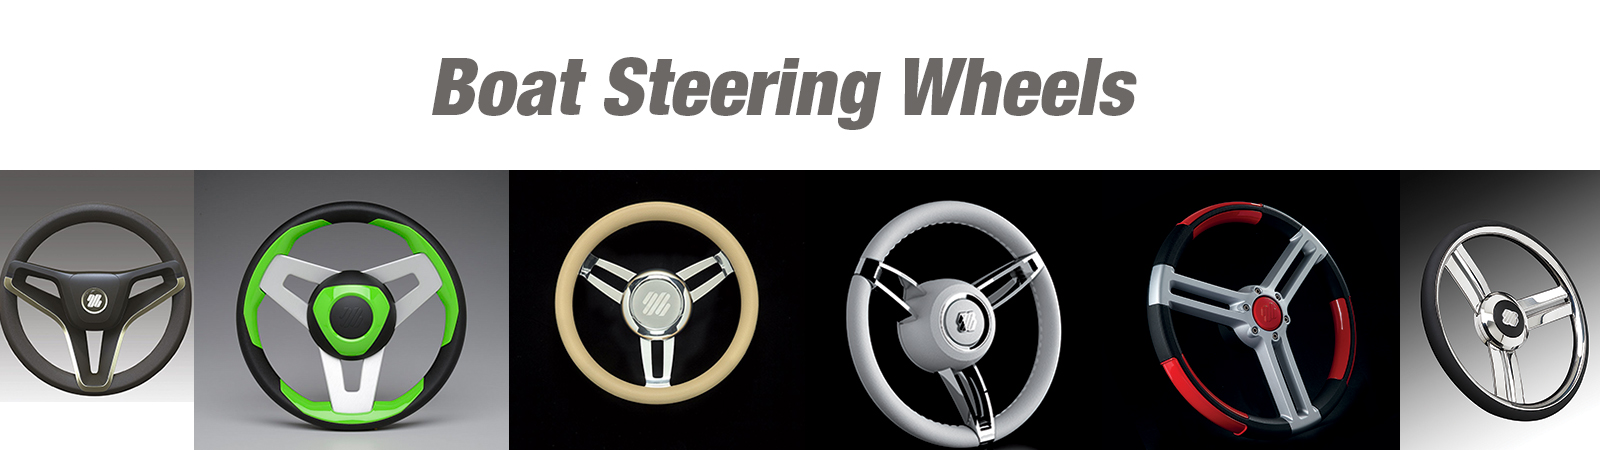 Boat Steering Wheels